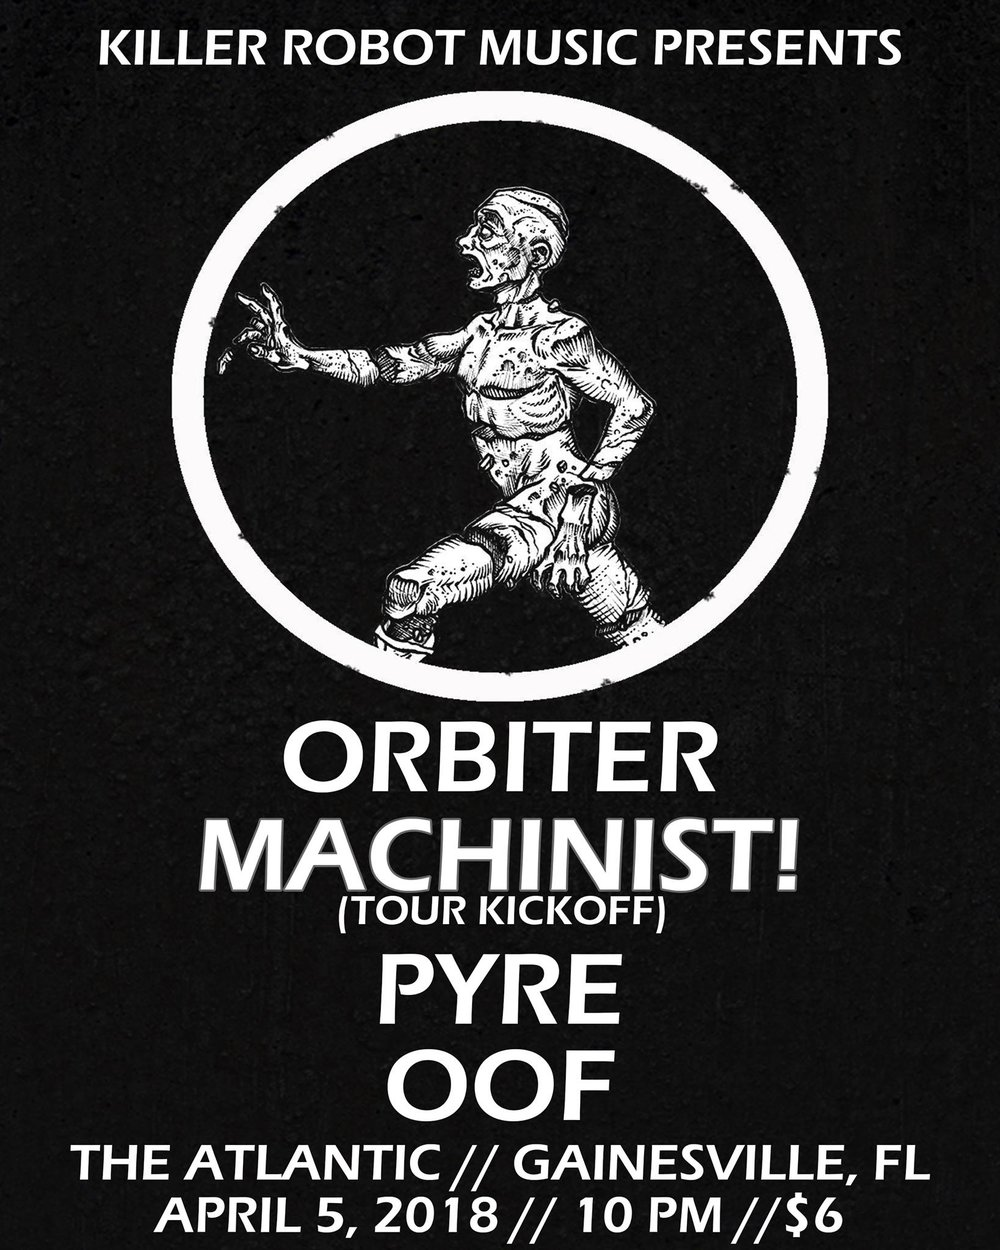 KILLER ROBOT MUSIC PRESENTS: Orbiter Machinist! (Tour kickoff) Pyre Oof  4/5/18 The Atlantic // Gainesville, FL Doors at 9 // Show at 10 $6